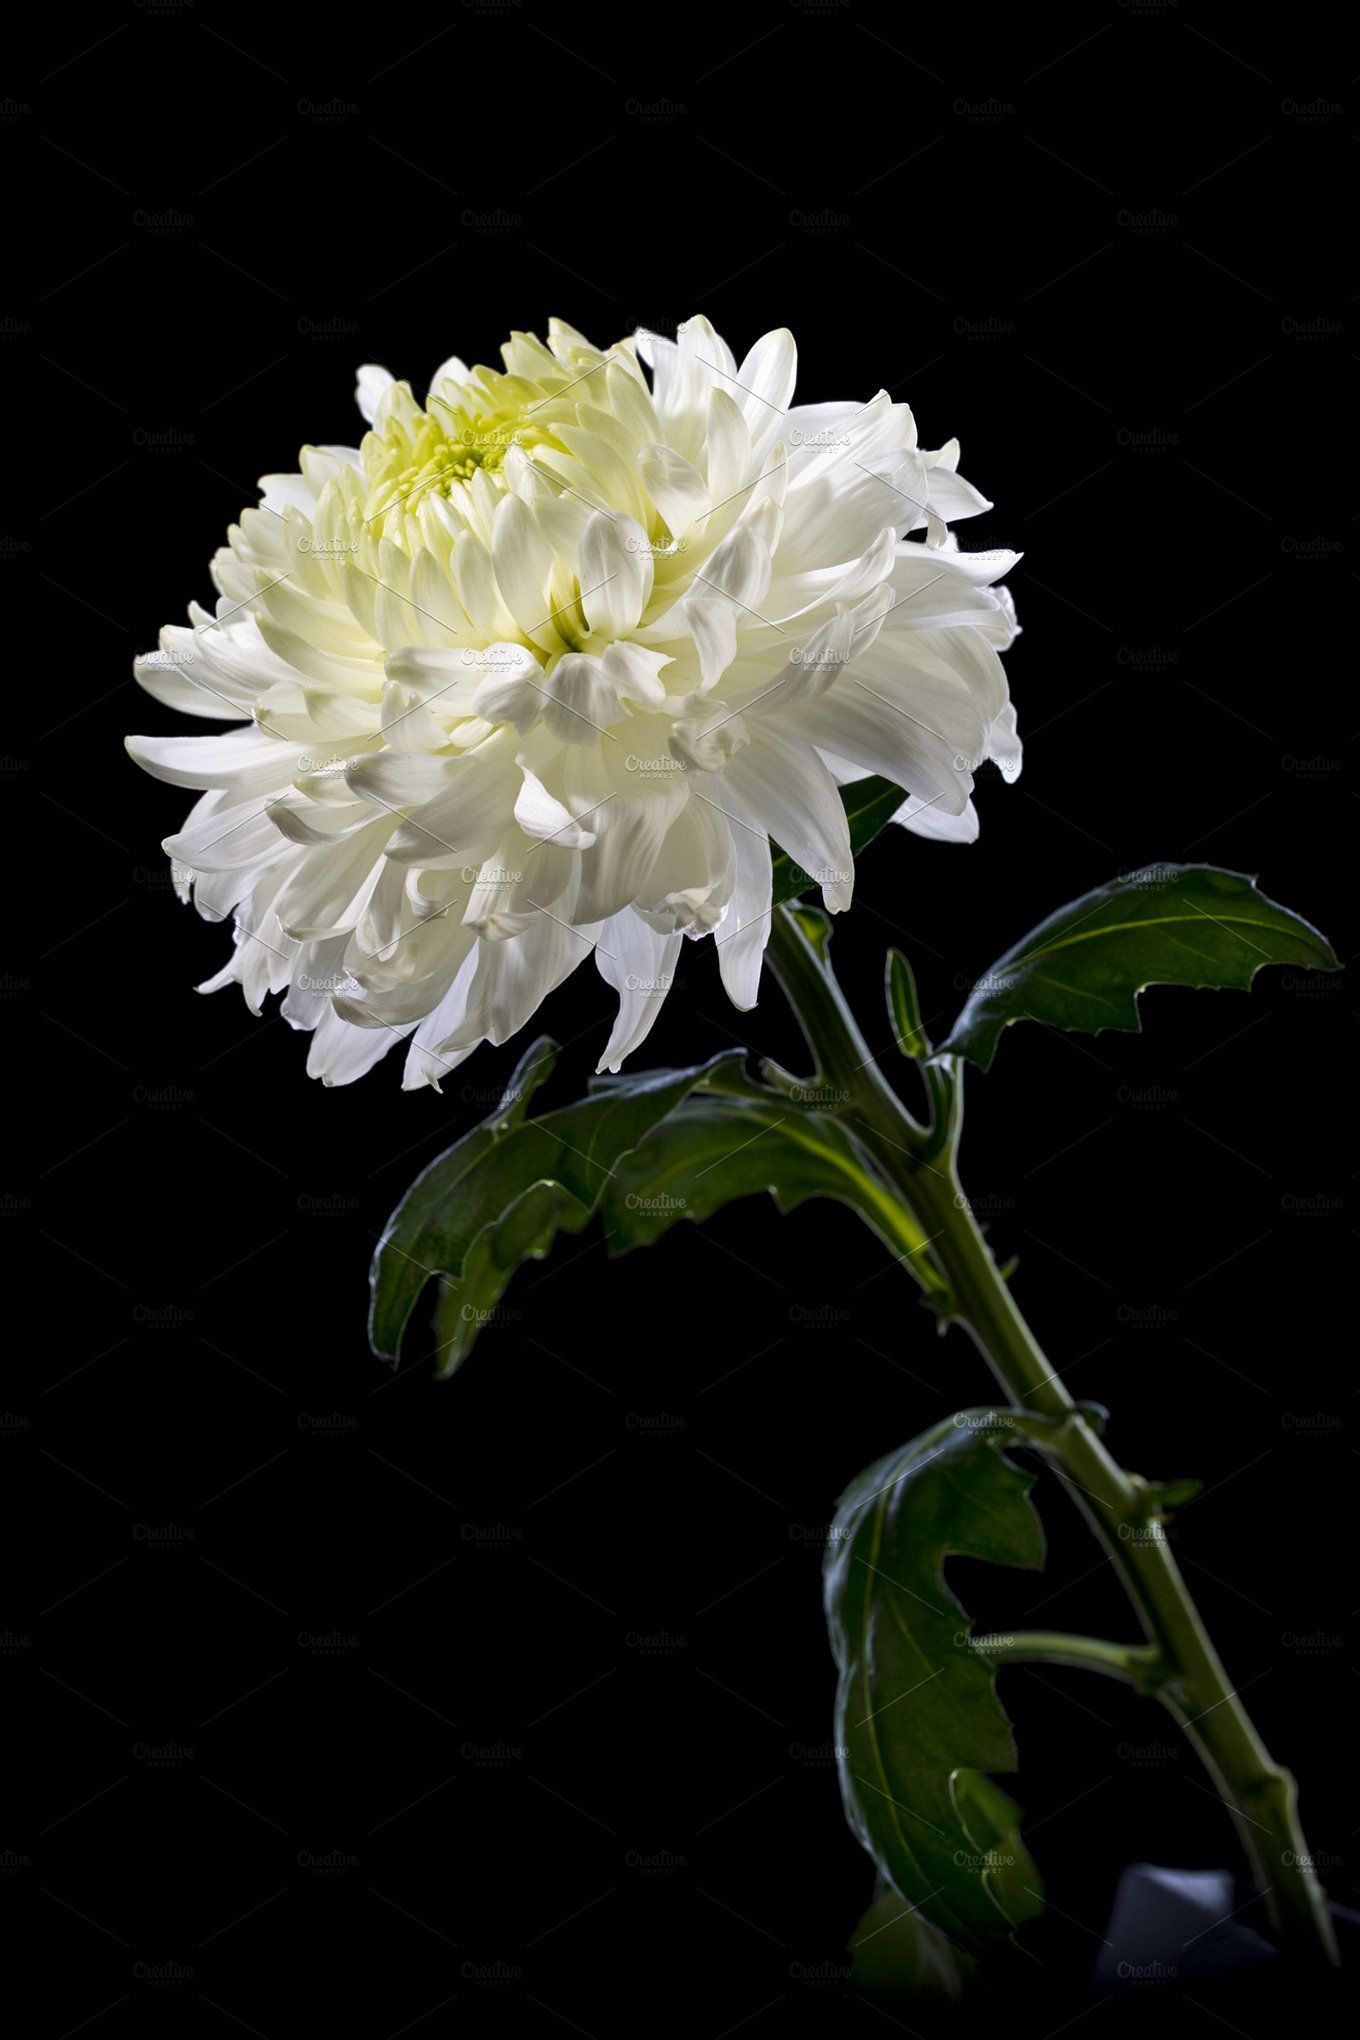 White Chrysanthemum On A Black Background In 2020 White Chrysanthemum Chrysanthemum Crysanthemum Flower